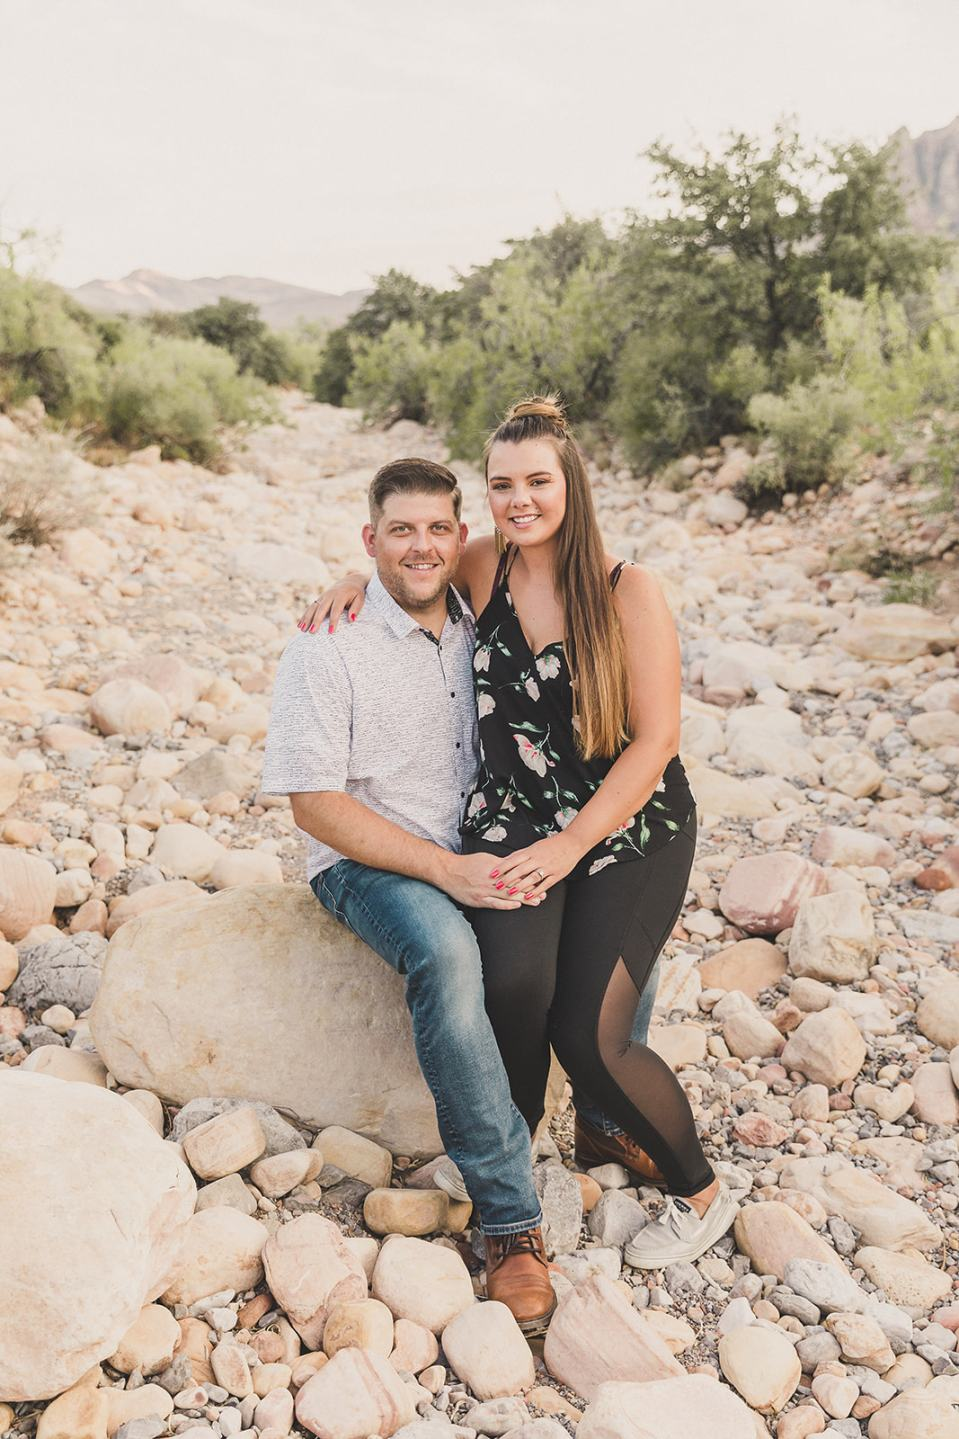 newly engaged couple poses on rocks in First Creek Canyon